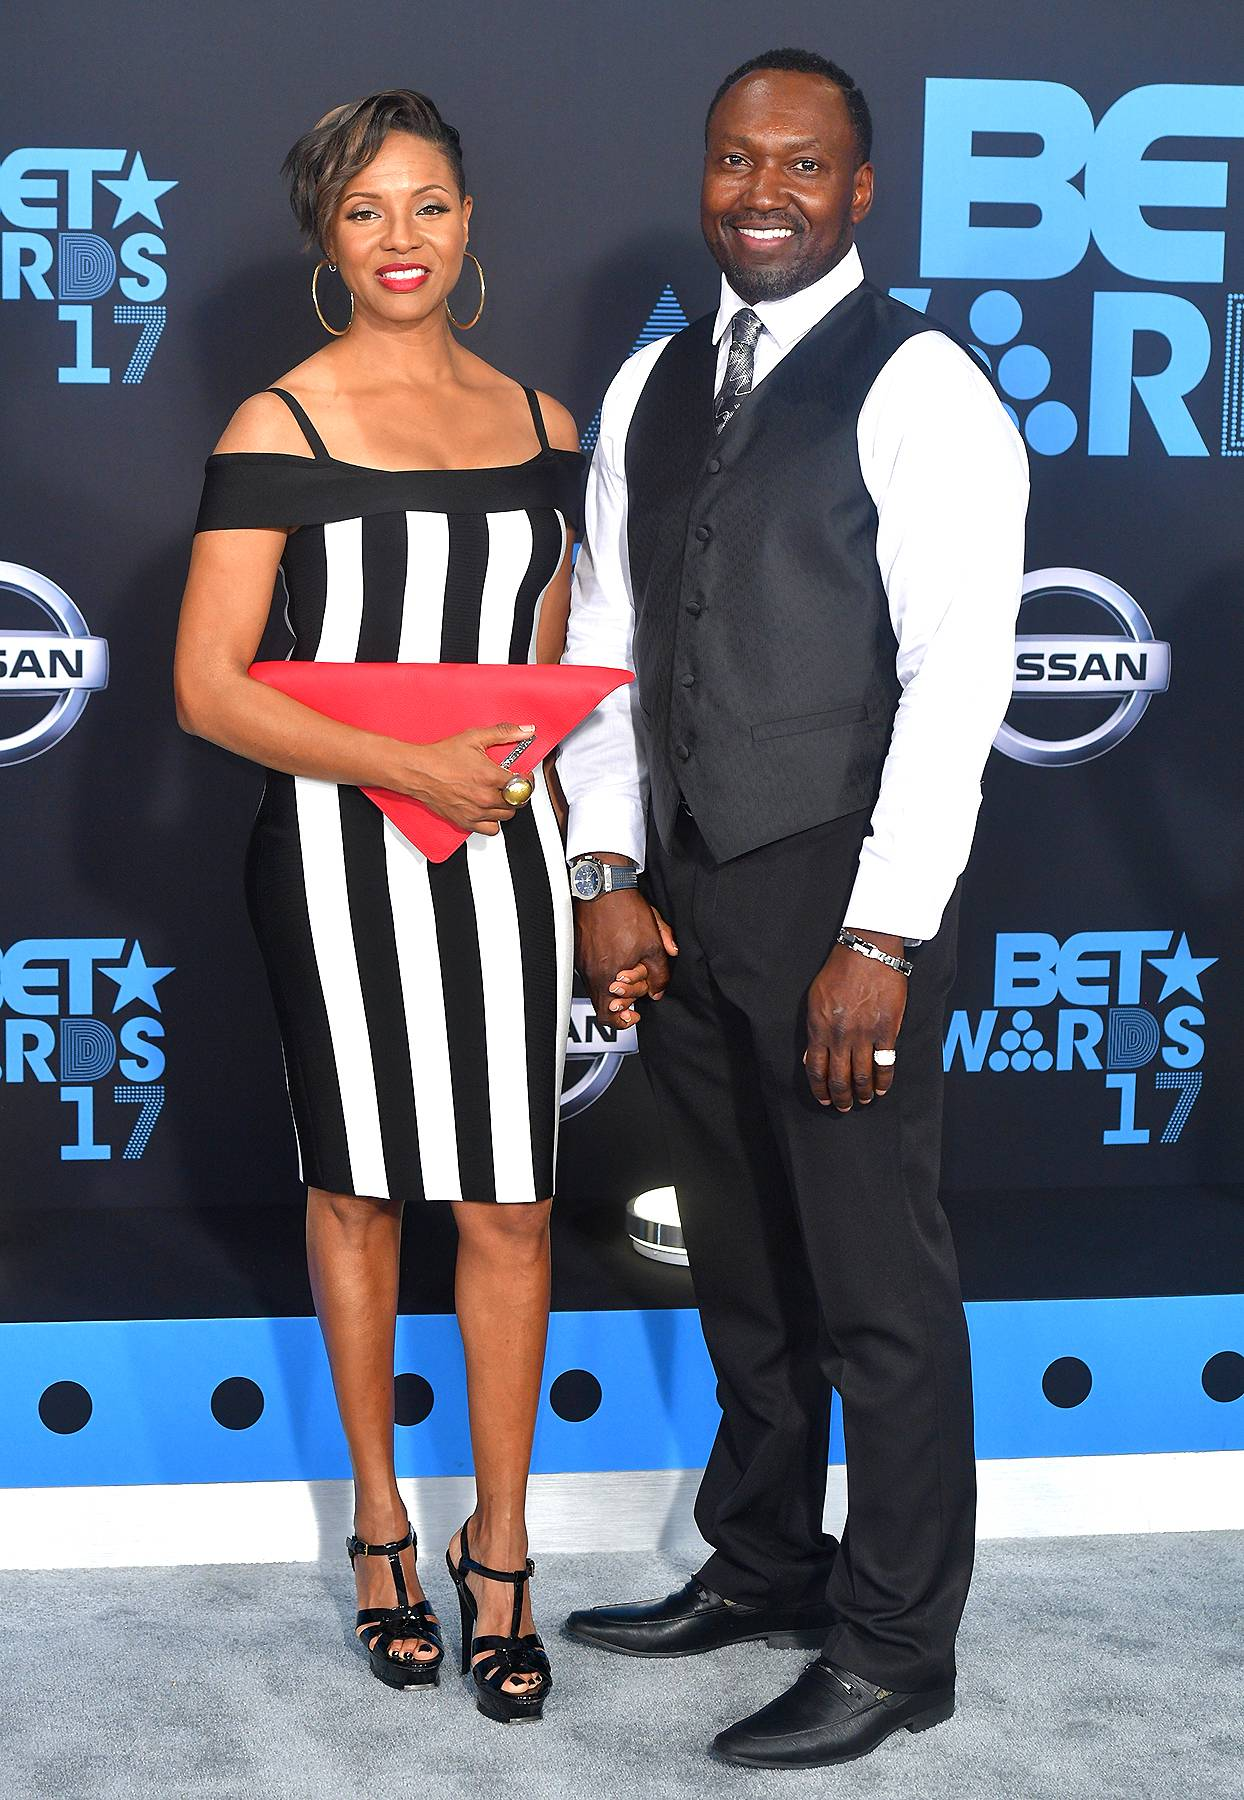 MC Lyte, John Wyche attend the 2017 BET Awards at Microsoft Theater on June 25, 2017 in Los Angeles, California. (Photo: Prince Williams/Wireimage)